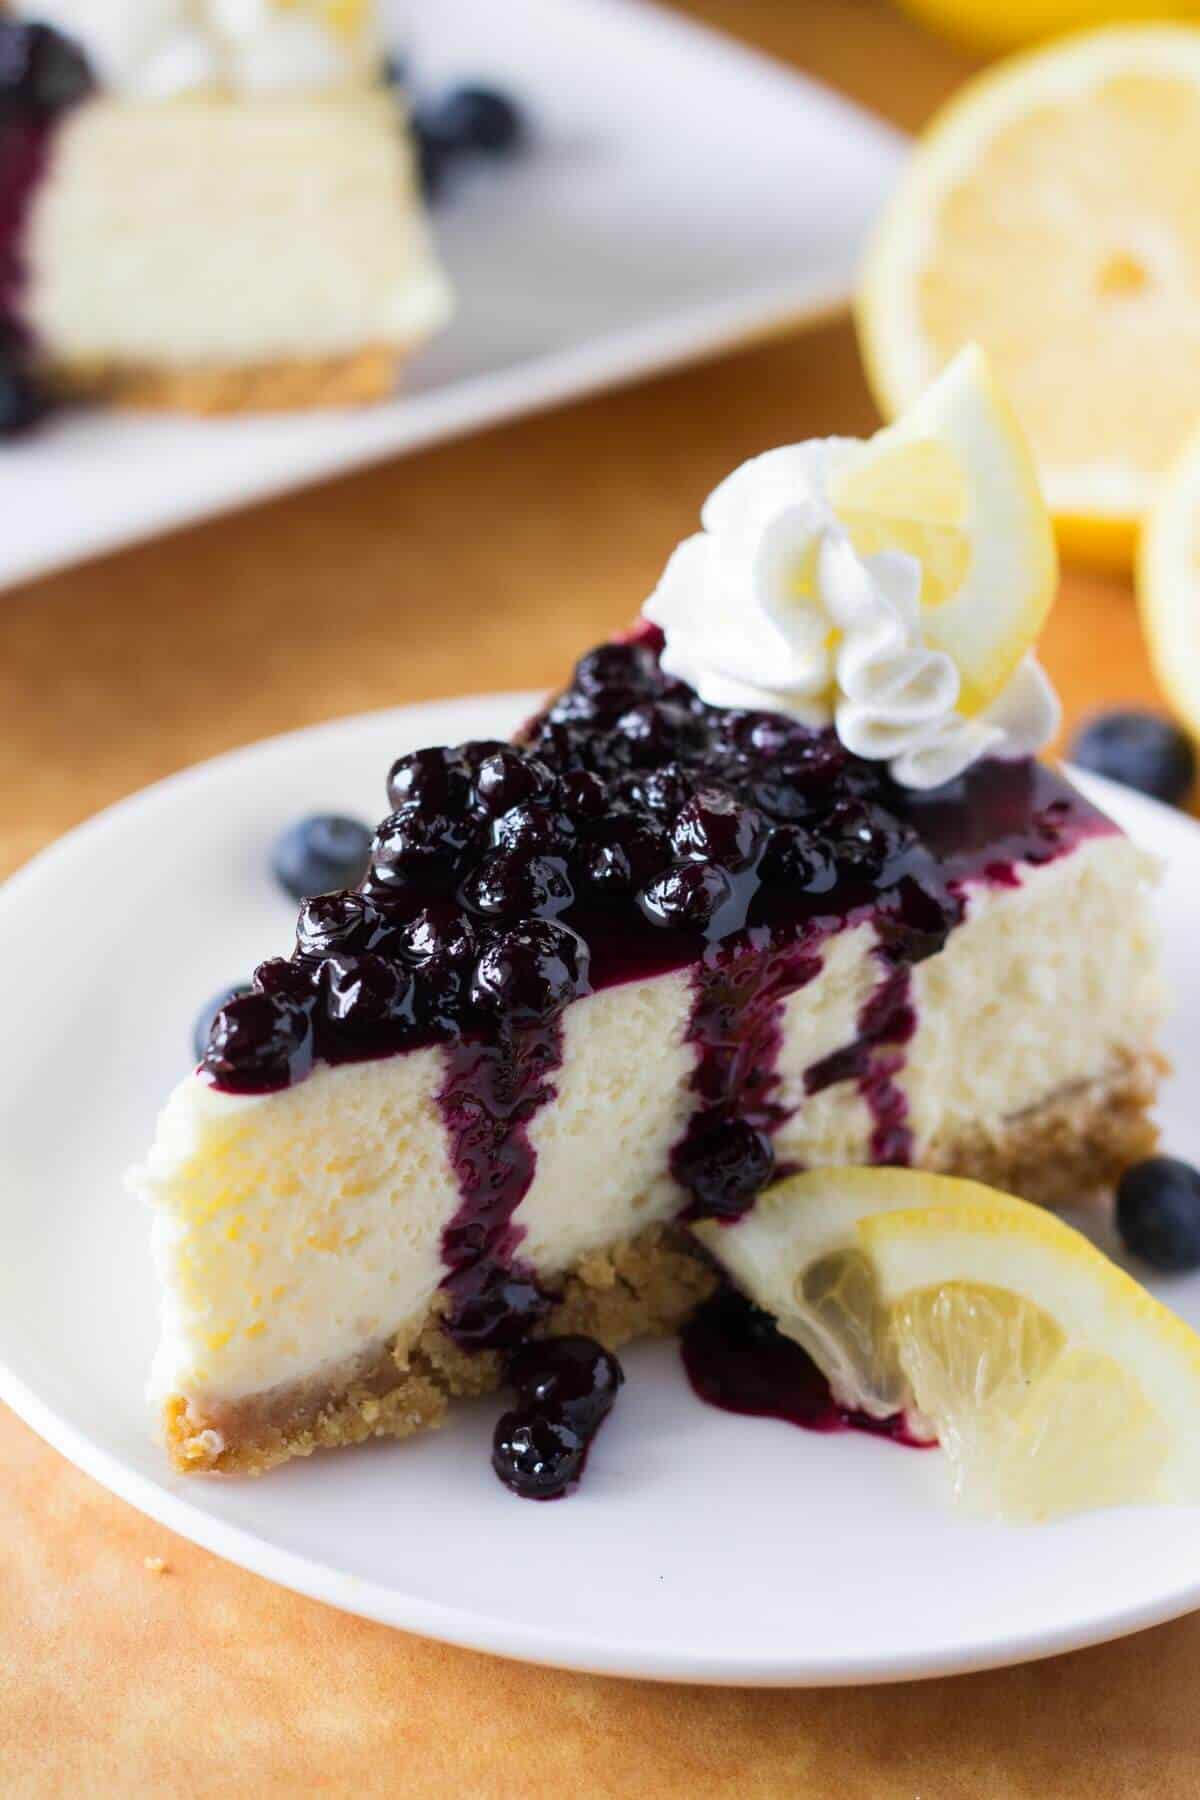 Blueberry sauce for cheesecake. This delicious blueberry sauce is perfect topping.